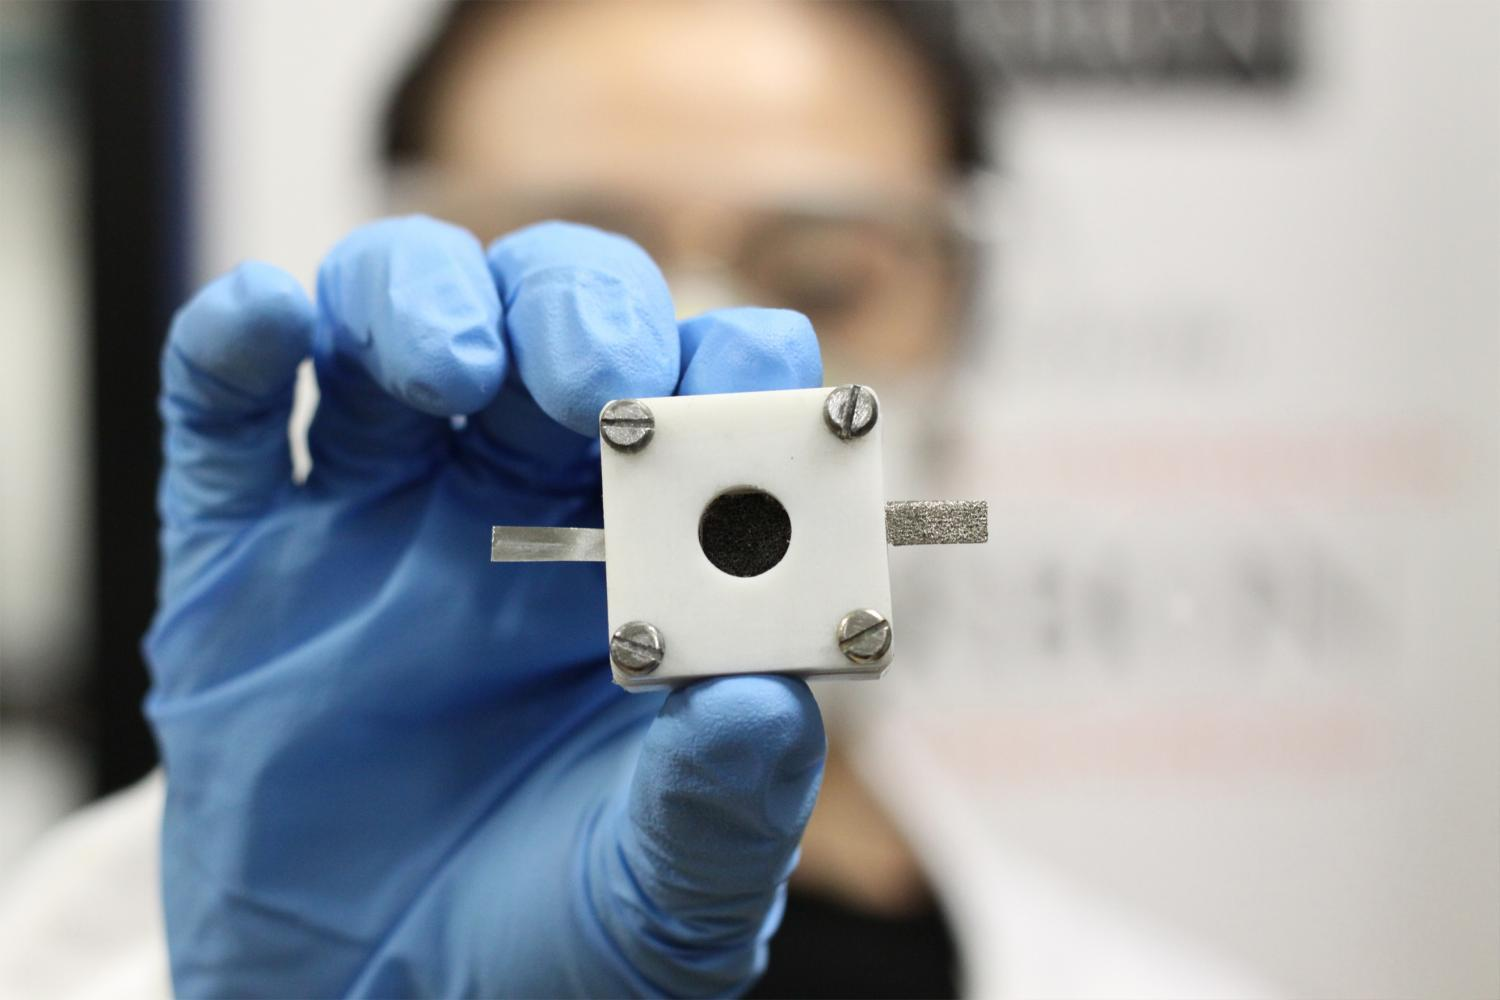 USYD Develops Re-Chargeable Zinc-Air Batteries